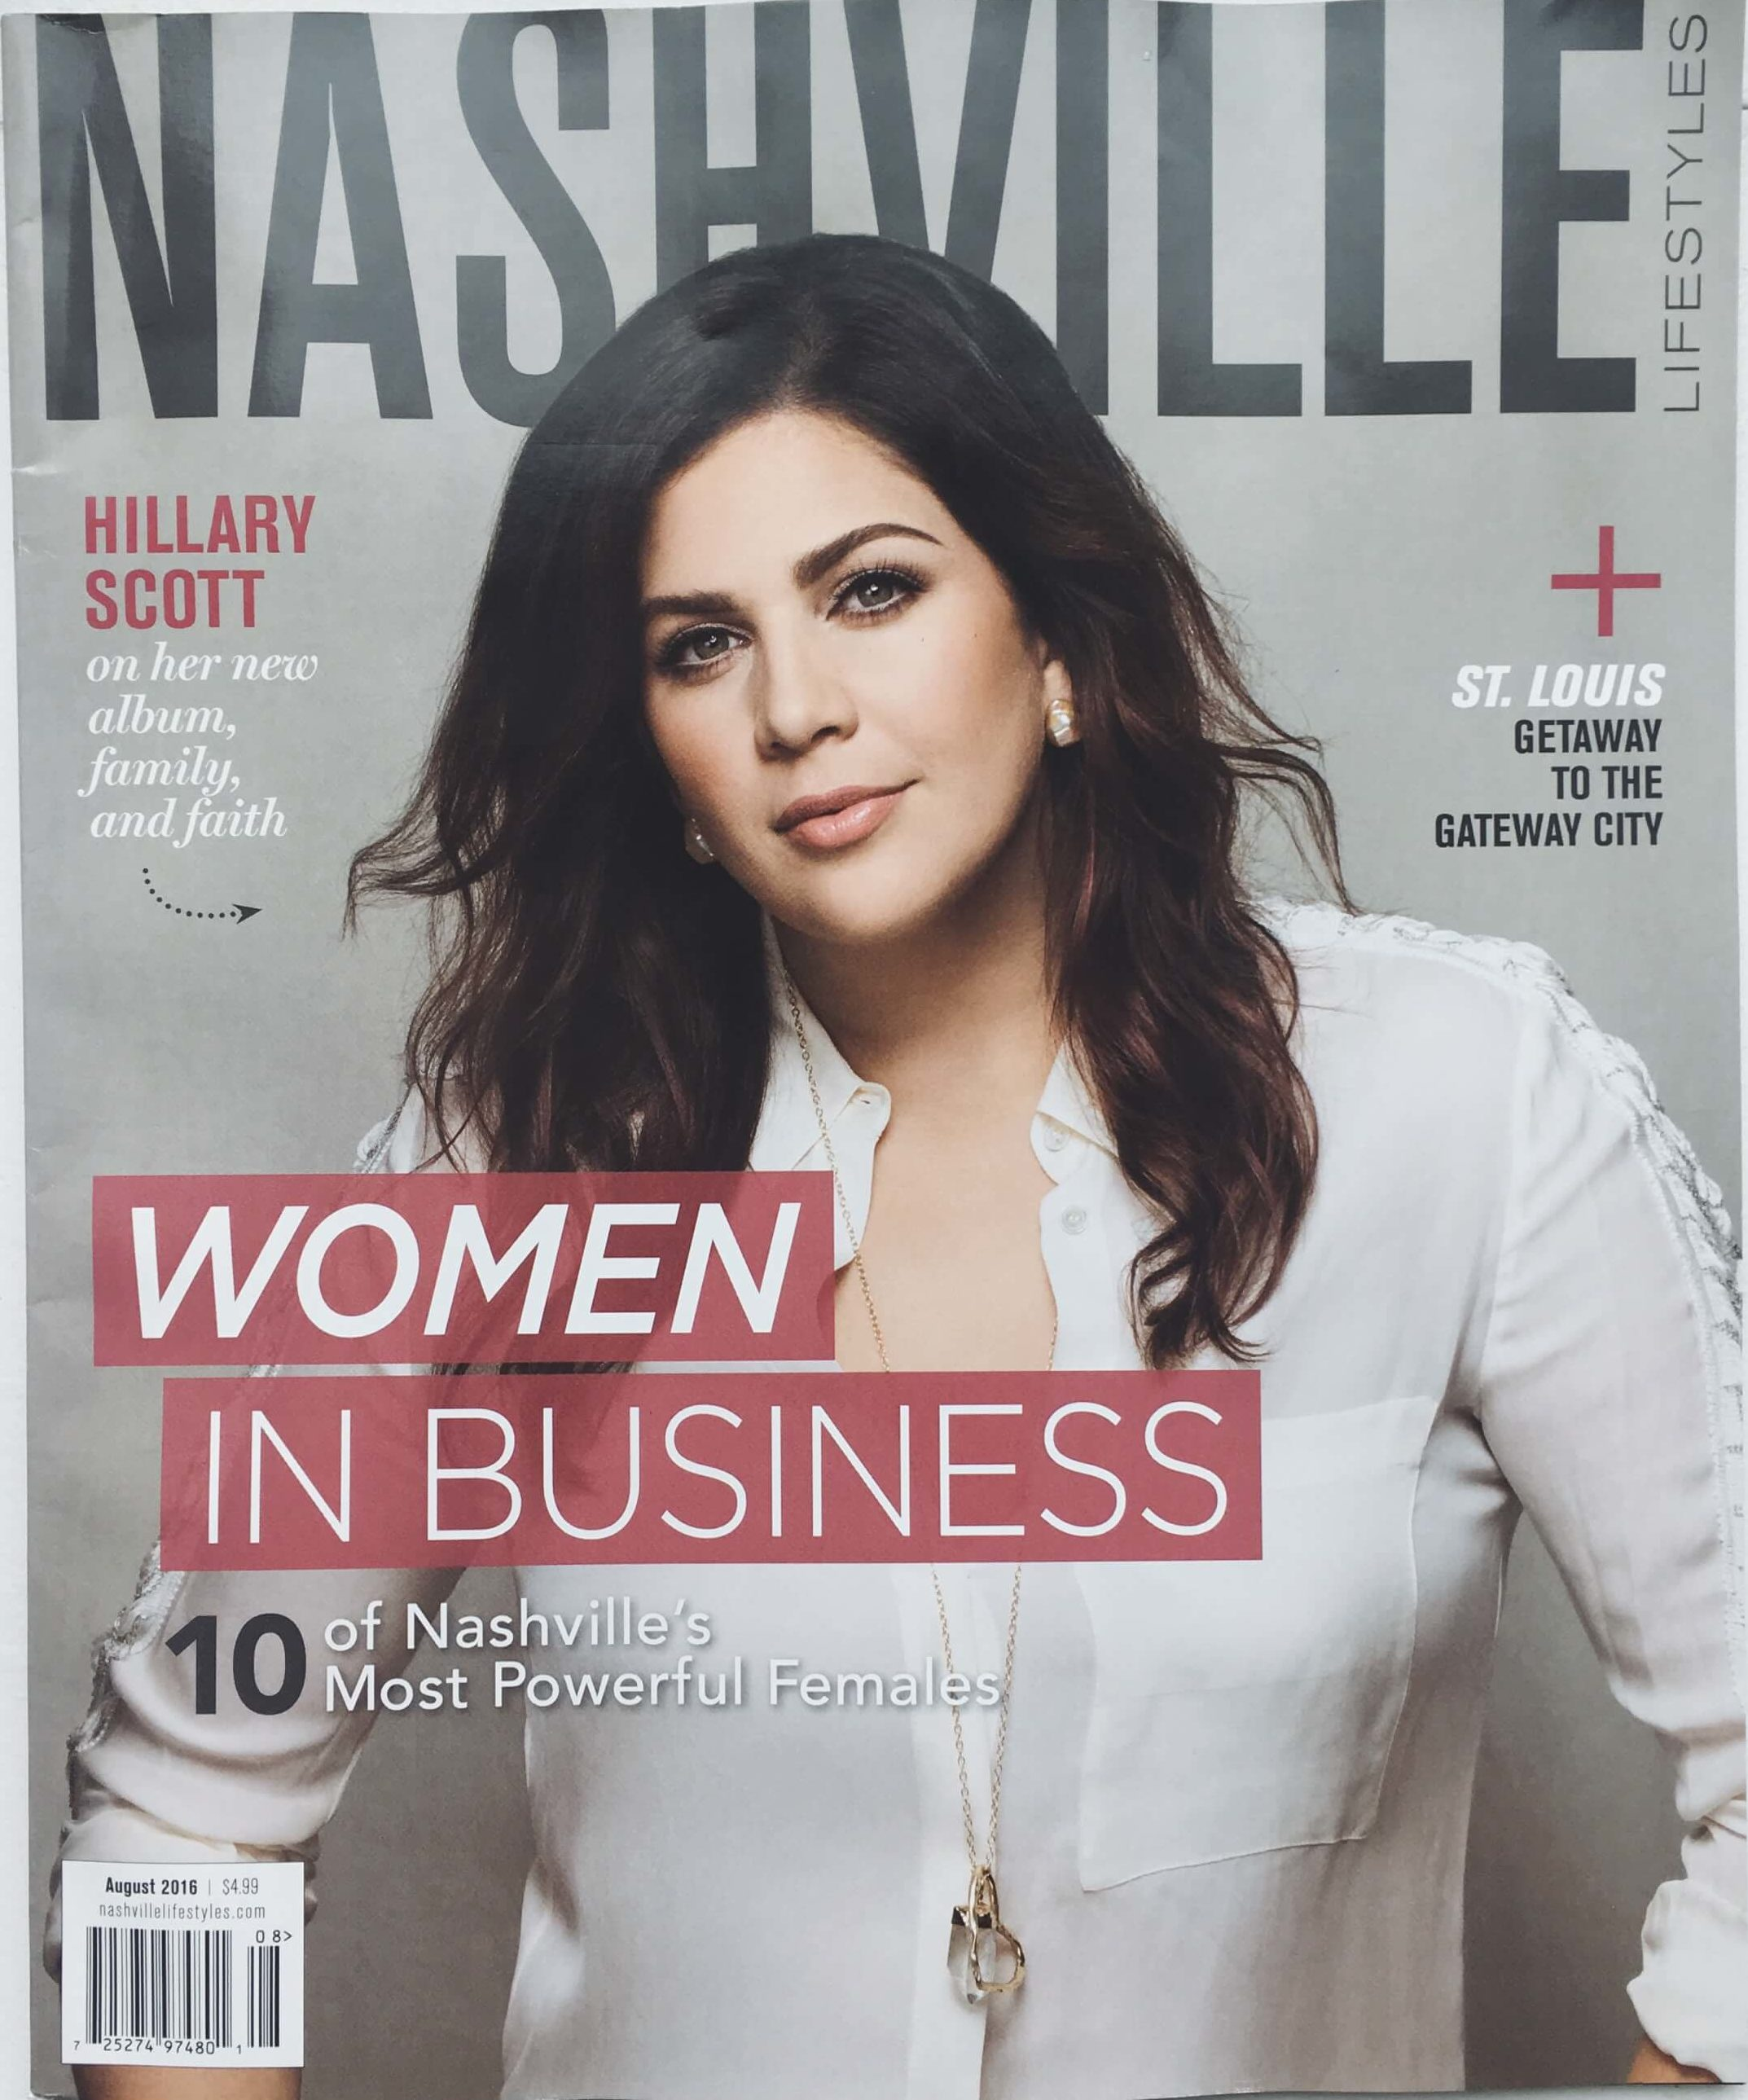 Nashville Lifestyles Magazine: 10 of Nashville's Most Powerful Females